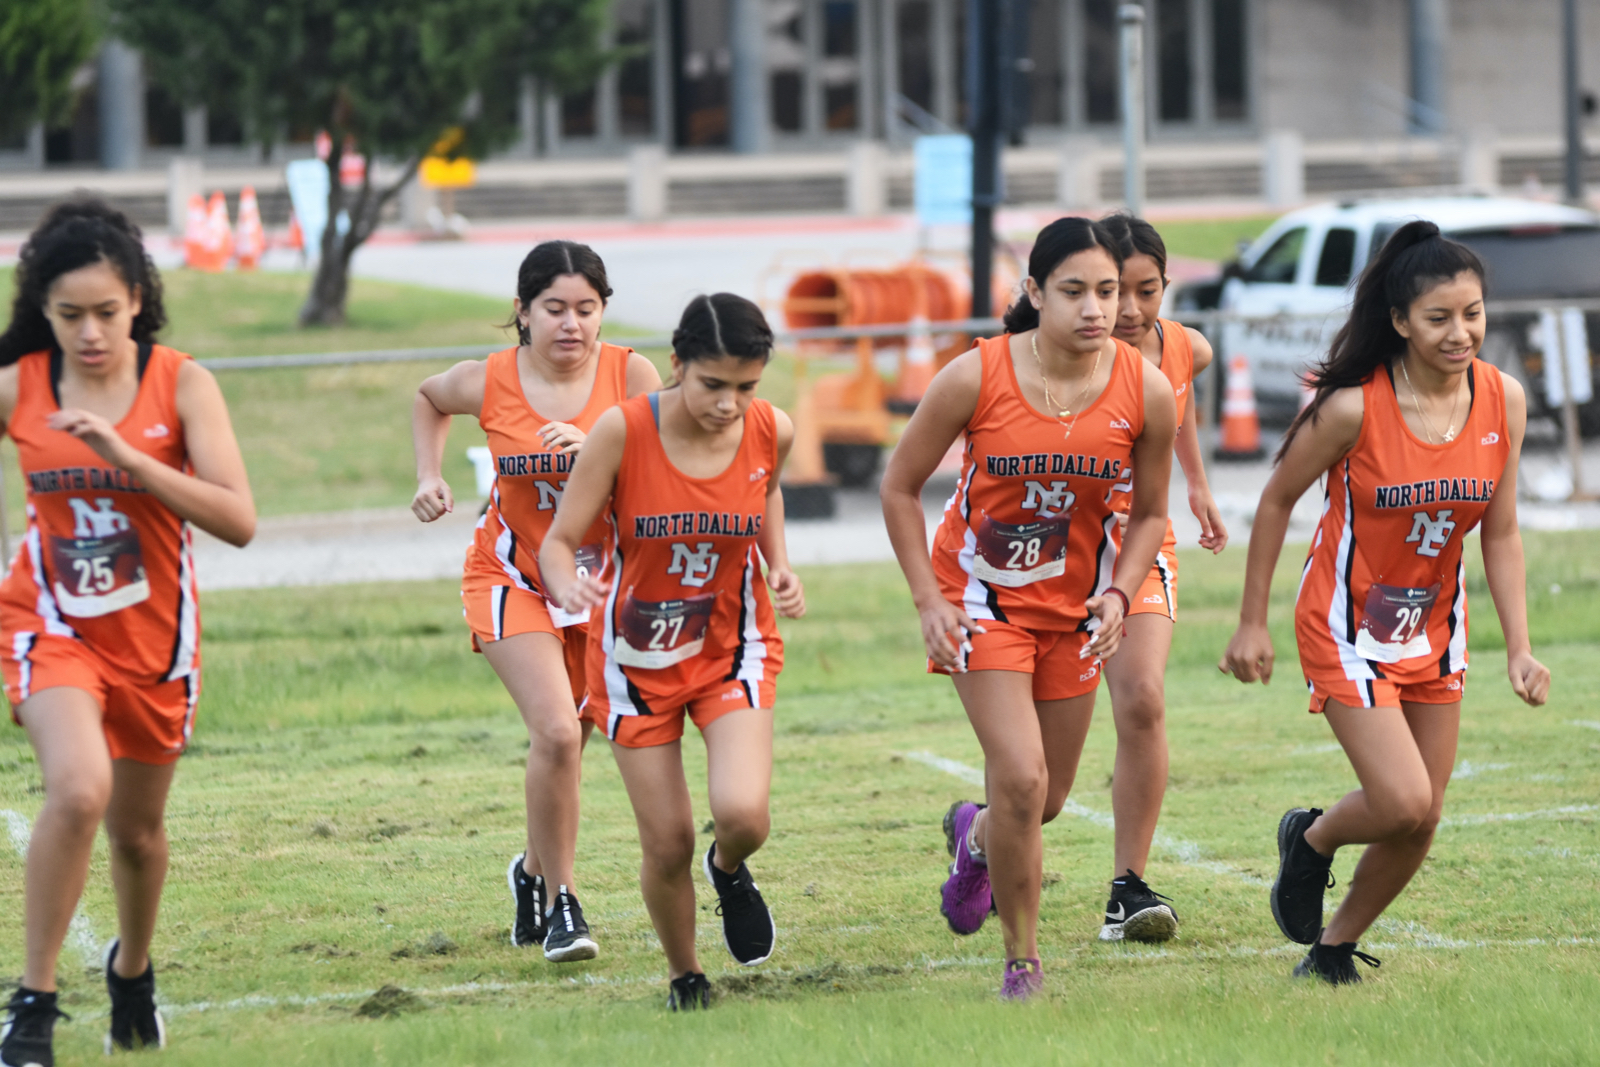 Photo gallery: North Dallas cross country teams at Jesse Owens Complex — Sept. 19, 2020